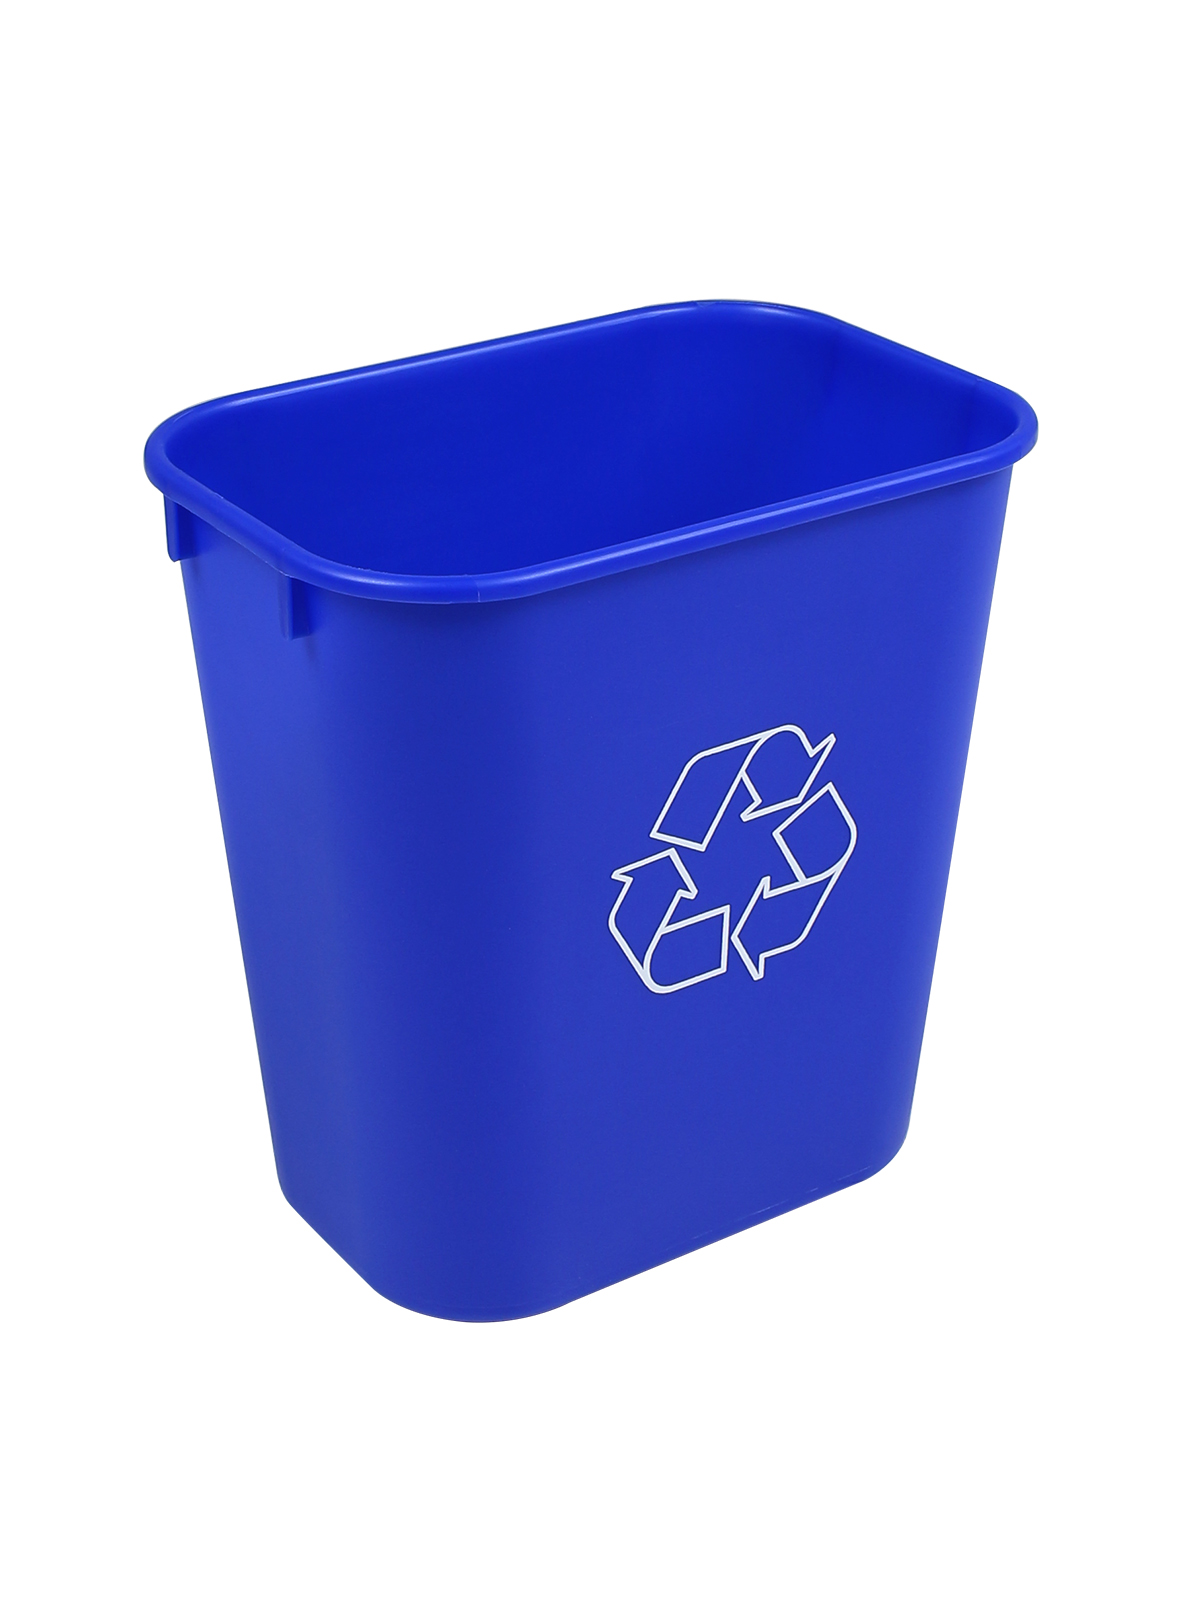 RECYCLING & WASTE BASKET - Body - 14 Q - Mobius Loop - Royal Blue